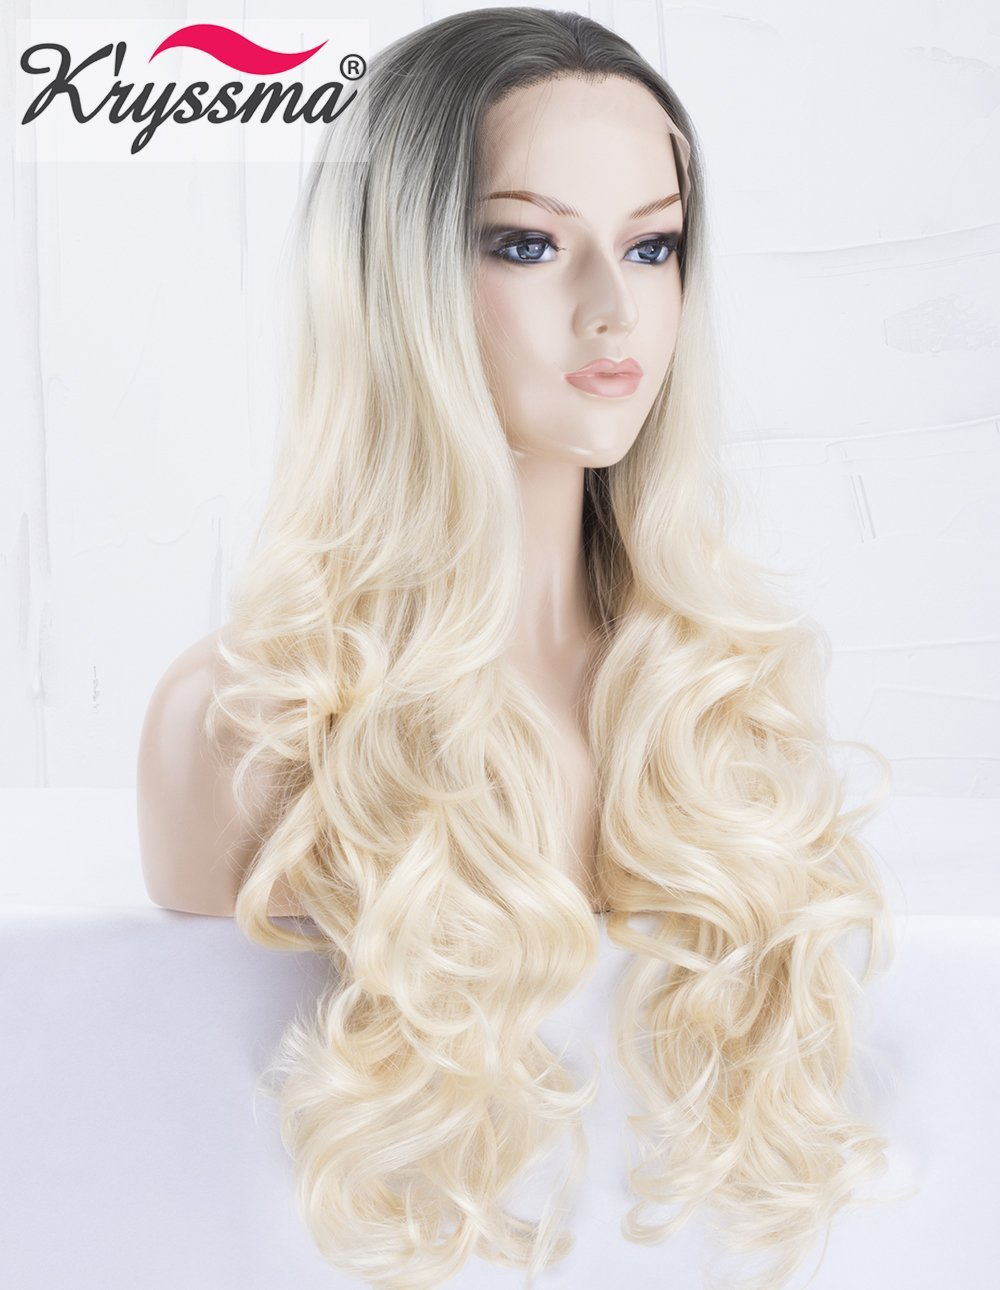 K ryssma Ombre White Blonde Lace Front Wig with Middle Parting Glueless  Long Wavy 2 Tone Black Roots to Platinum Blonde Synthetic Wigs for Women  Heat ... b6a56bfaebaf